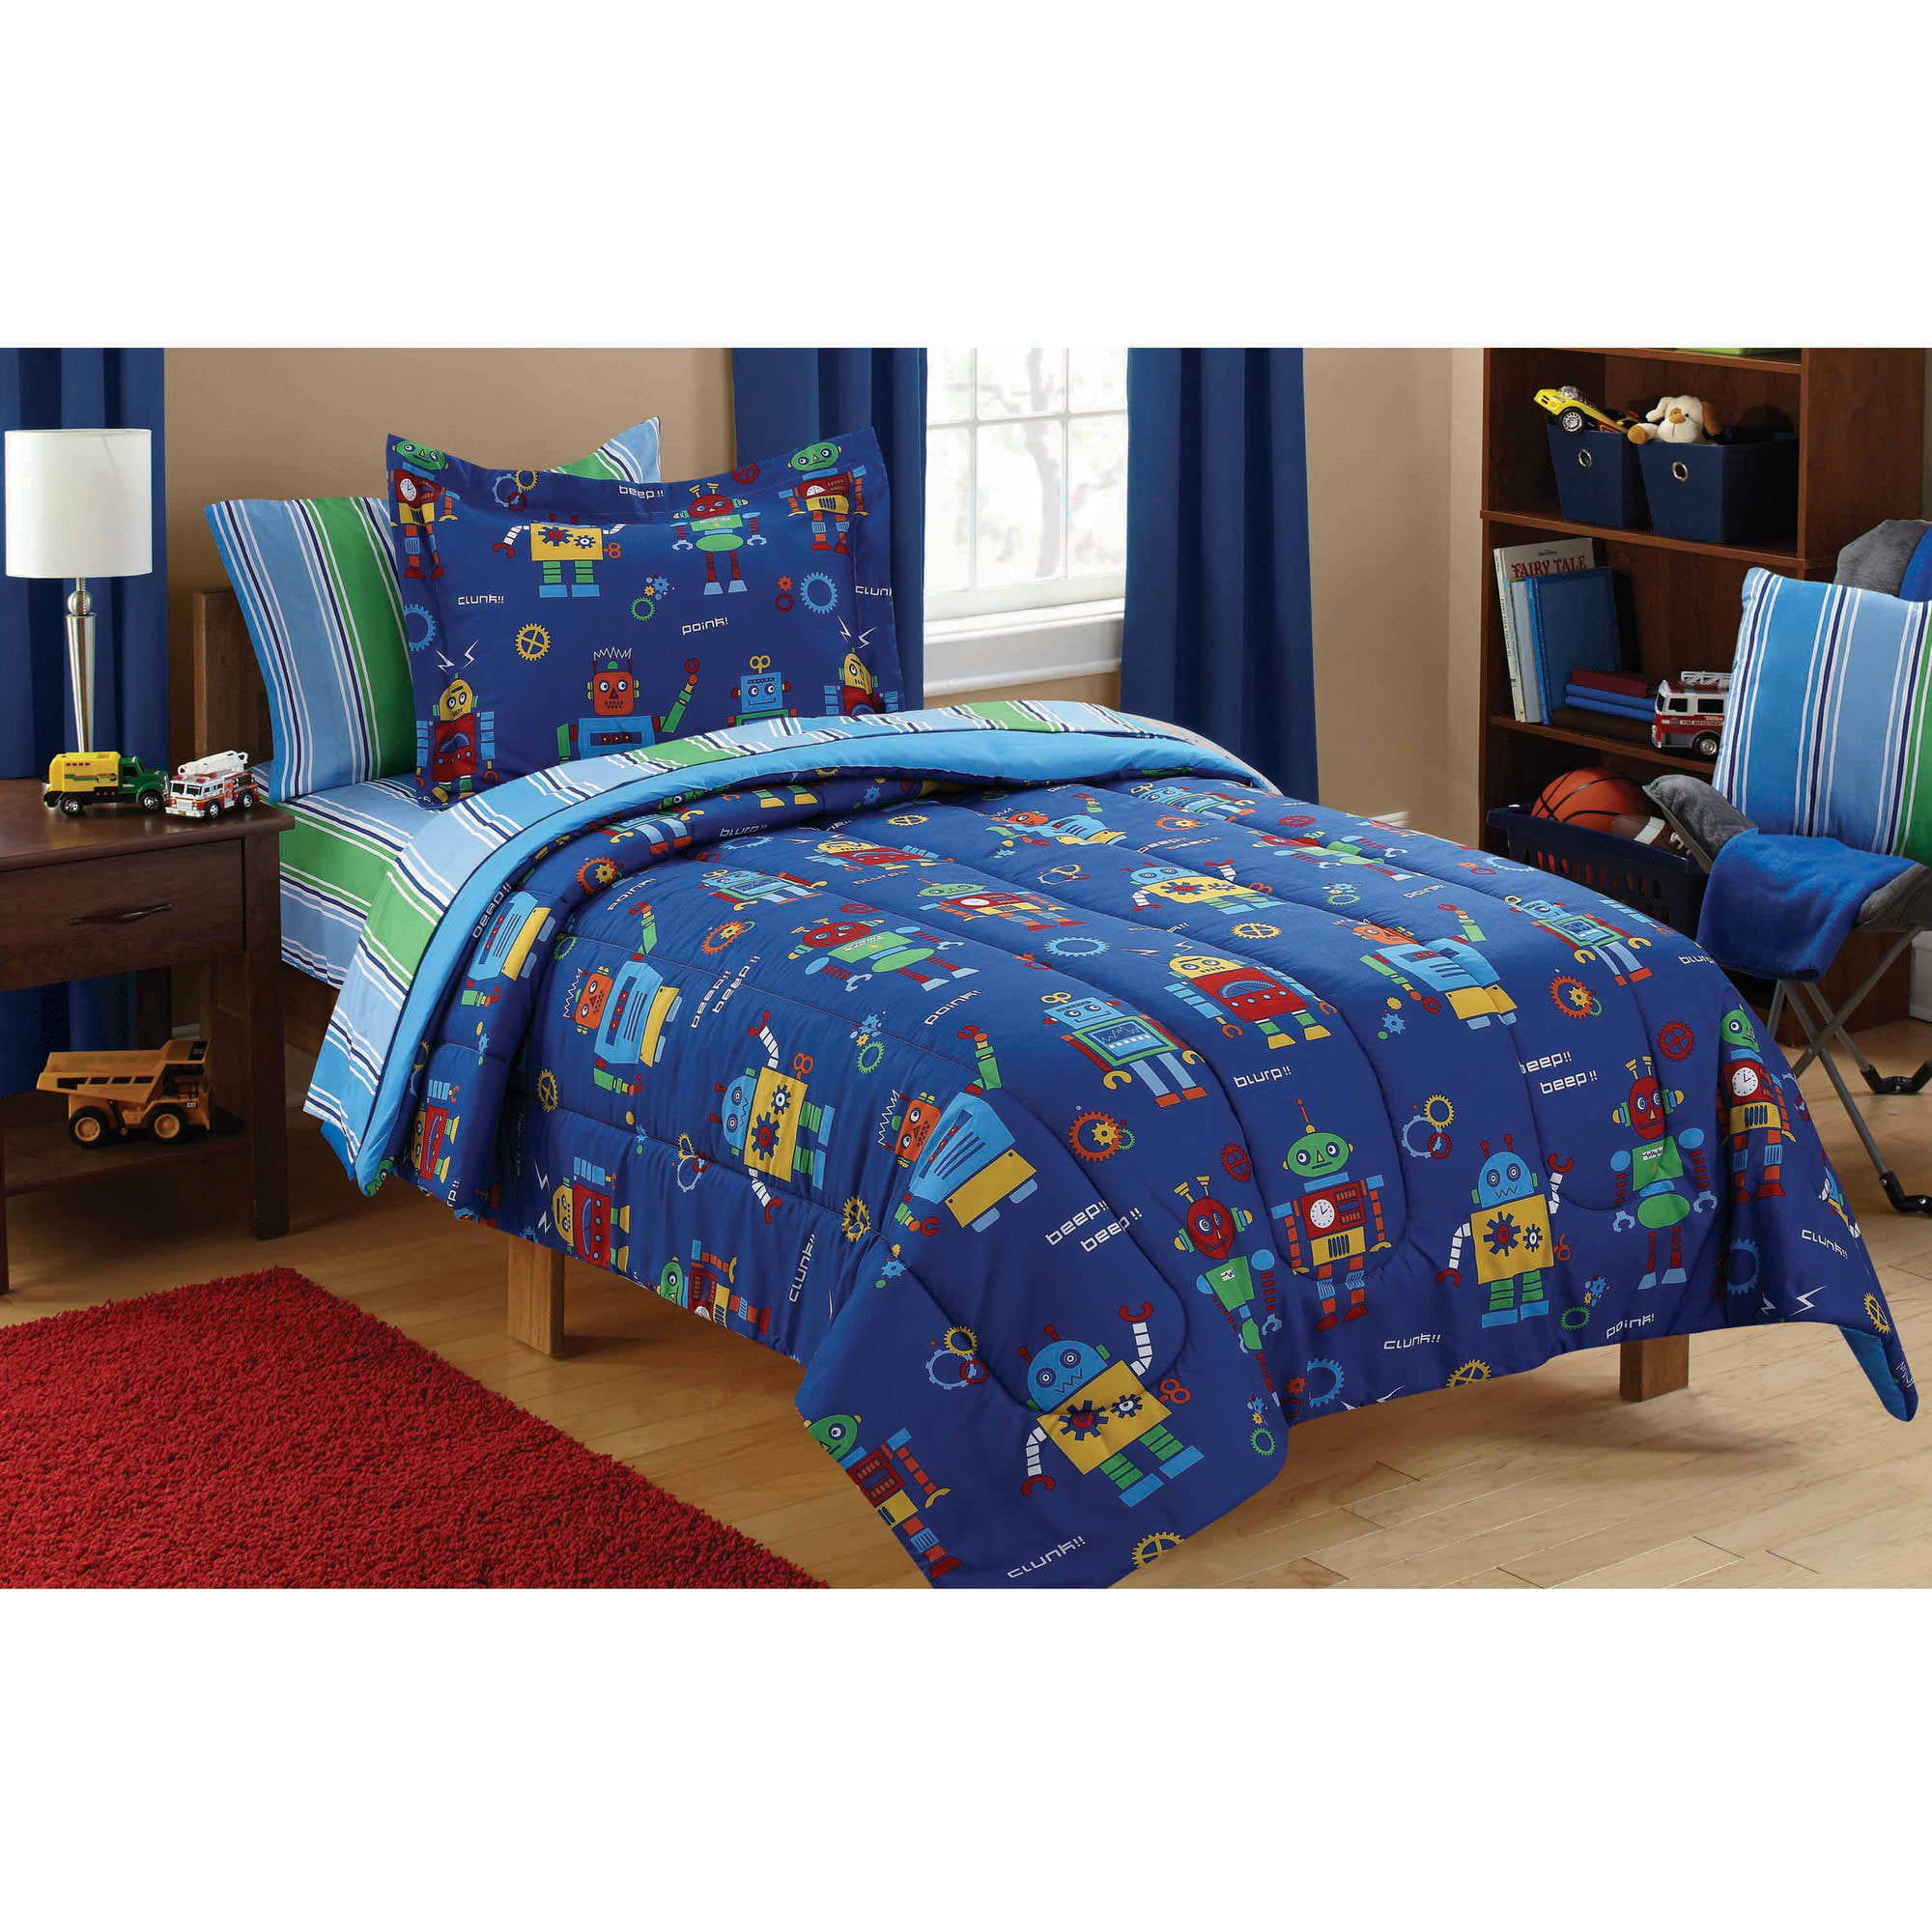 Mainstays Robot Toddler Full Bed Set